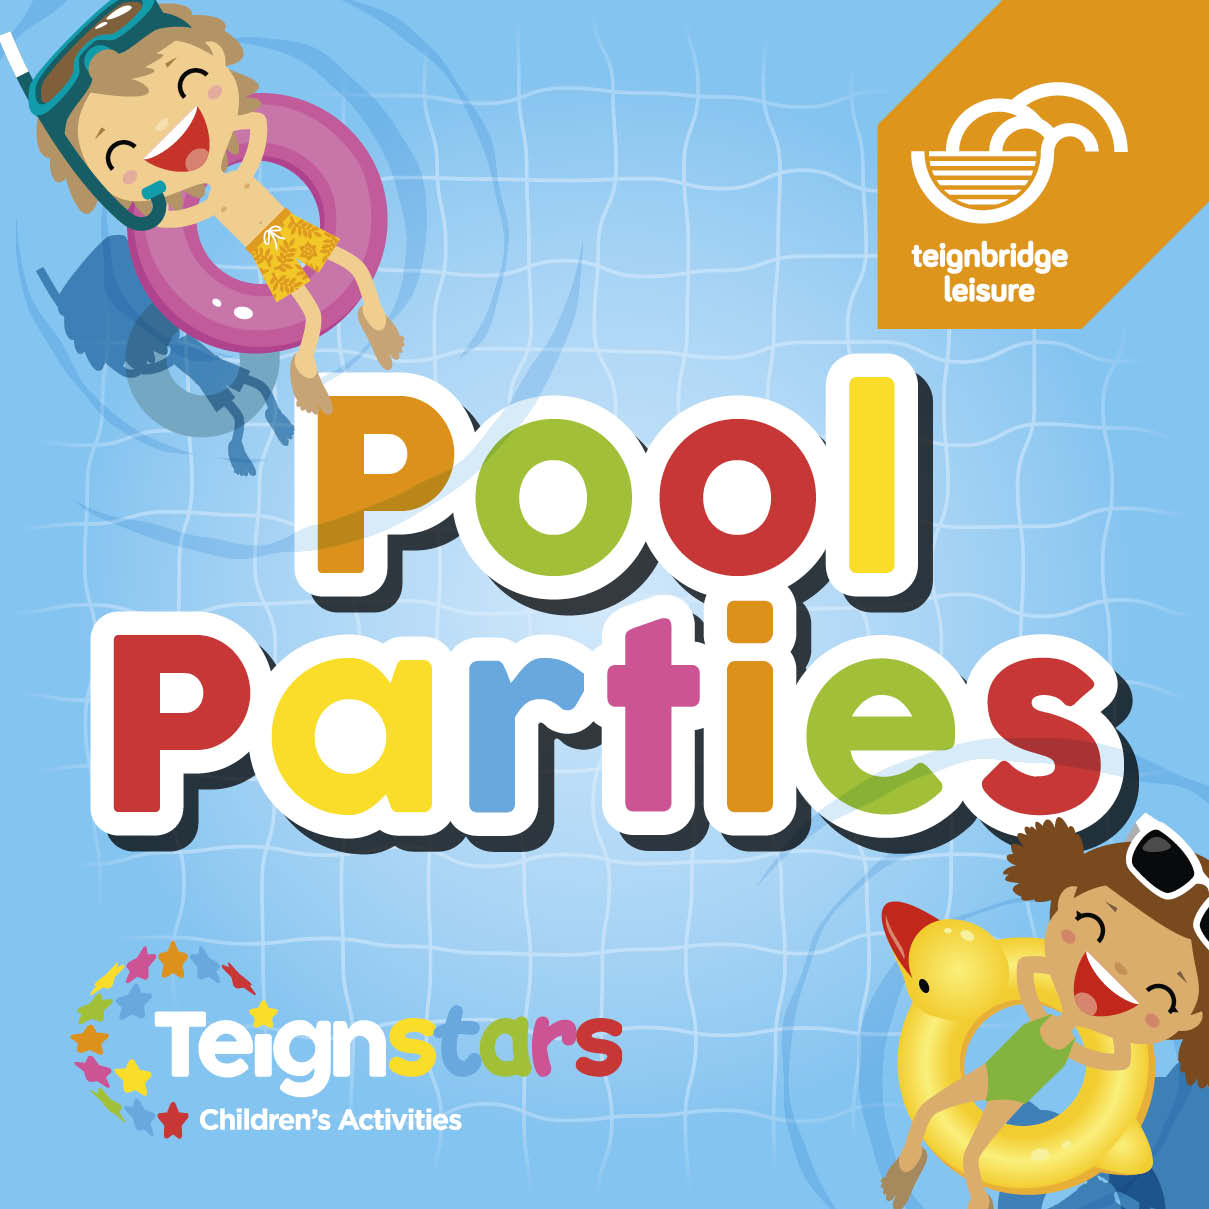 Pool Parties at Newton Abbot Leisure Centre